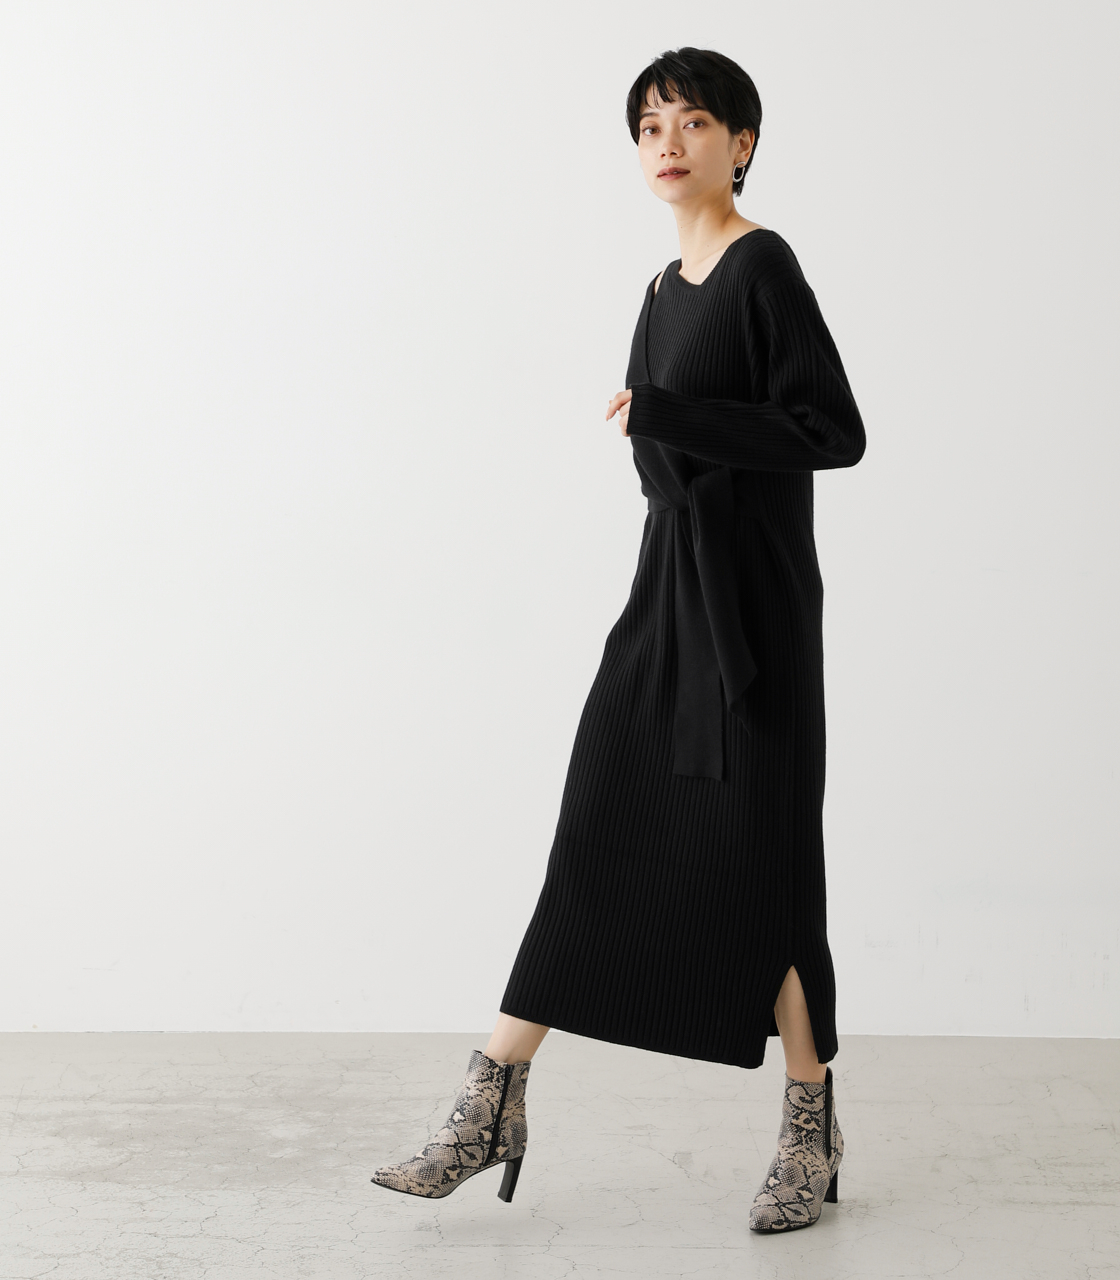 FRONT LINK ASYMMETRY KNIT OP/フロントリンクアシンメトリーニットワンピース【MOOK53掲載 90004】 詳細画像 BLK 4